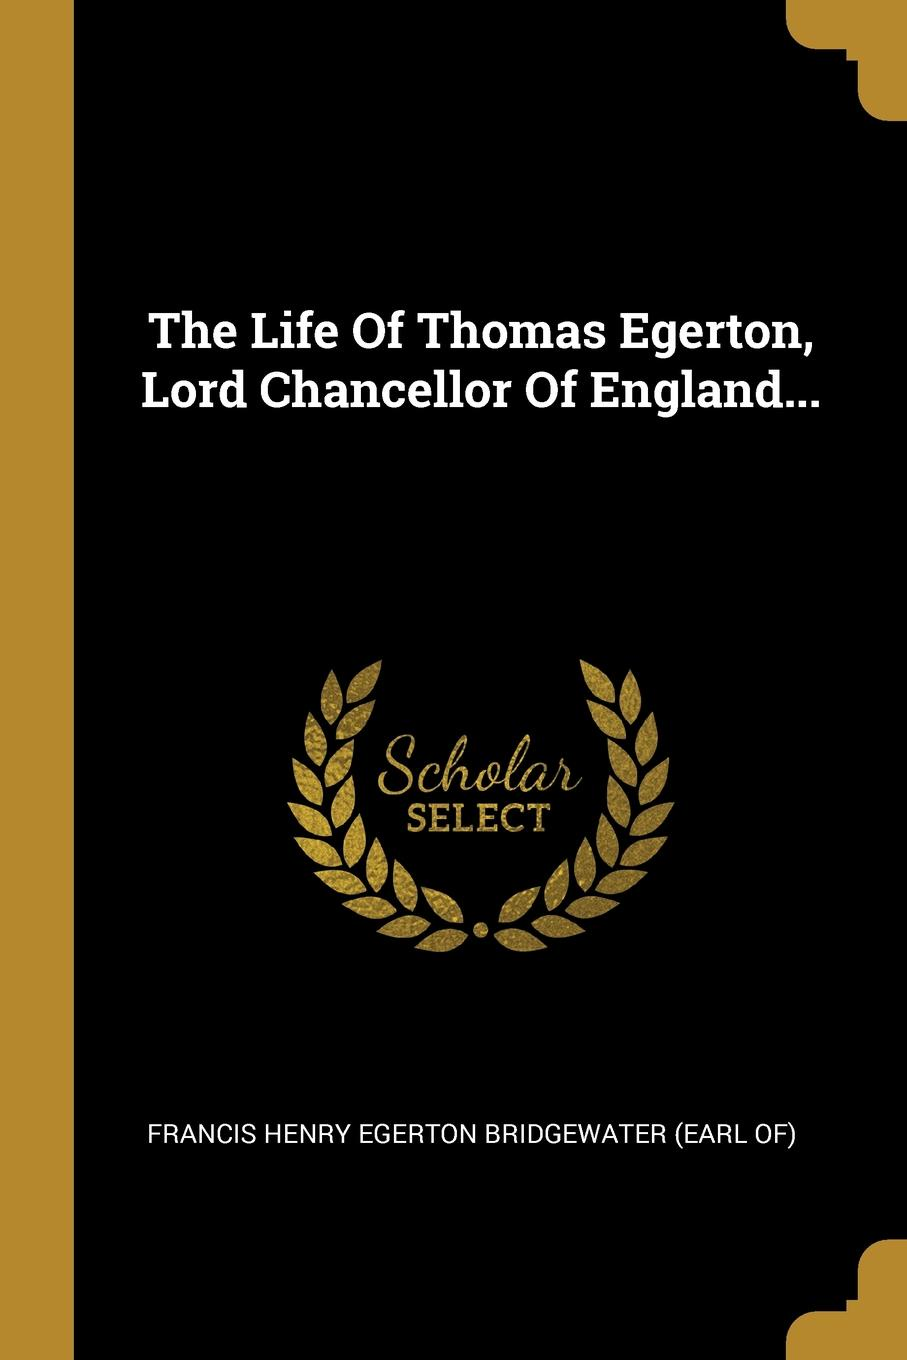 The Life Of Thomas Egerton, Lord Chancellor Of England...